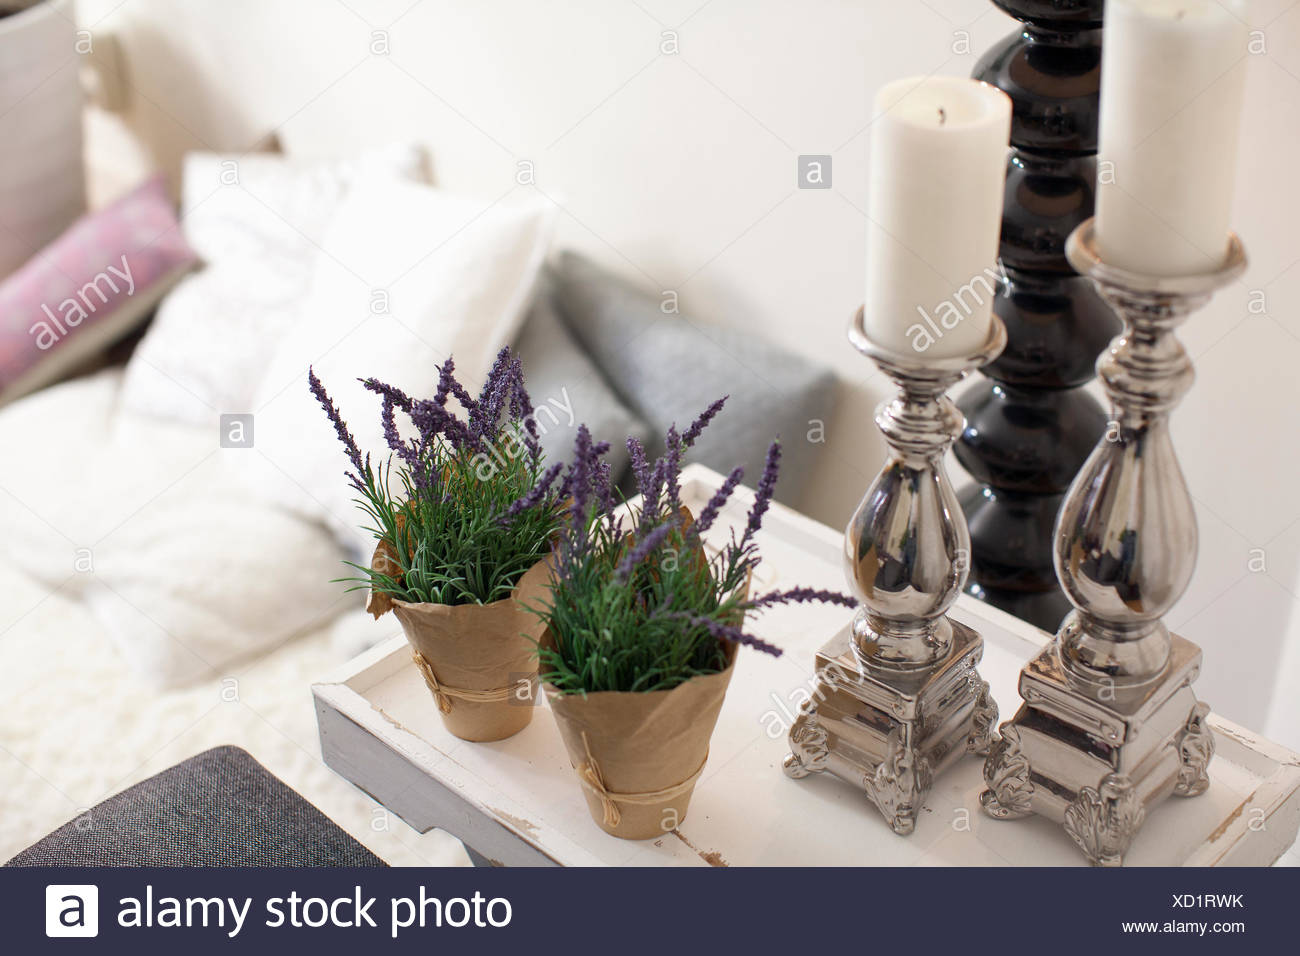 Decoration with candle holders and two potted plants at living room - Stock Image